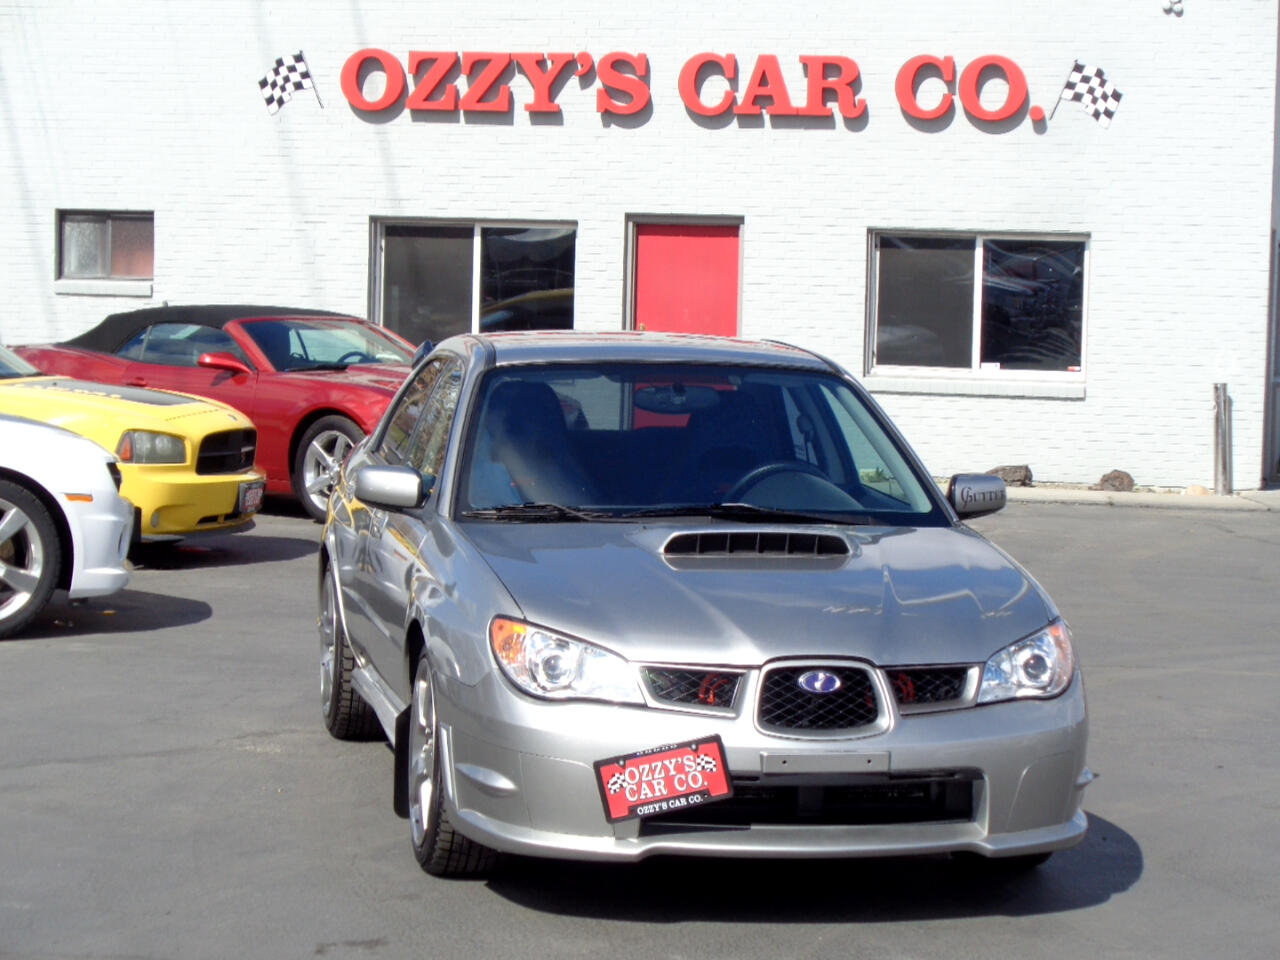 2006 Subaru Impreza Sedan 2.5 WRX STi w/Gold Wheels